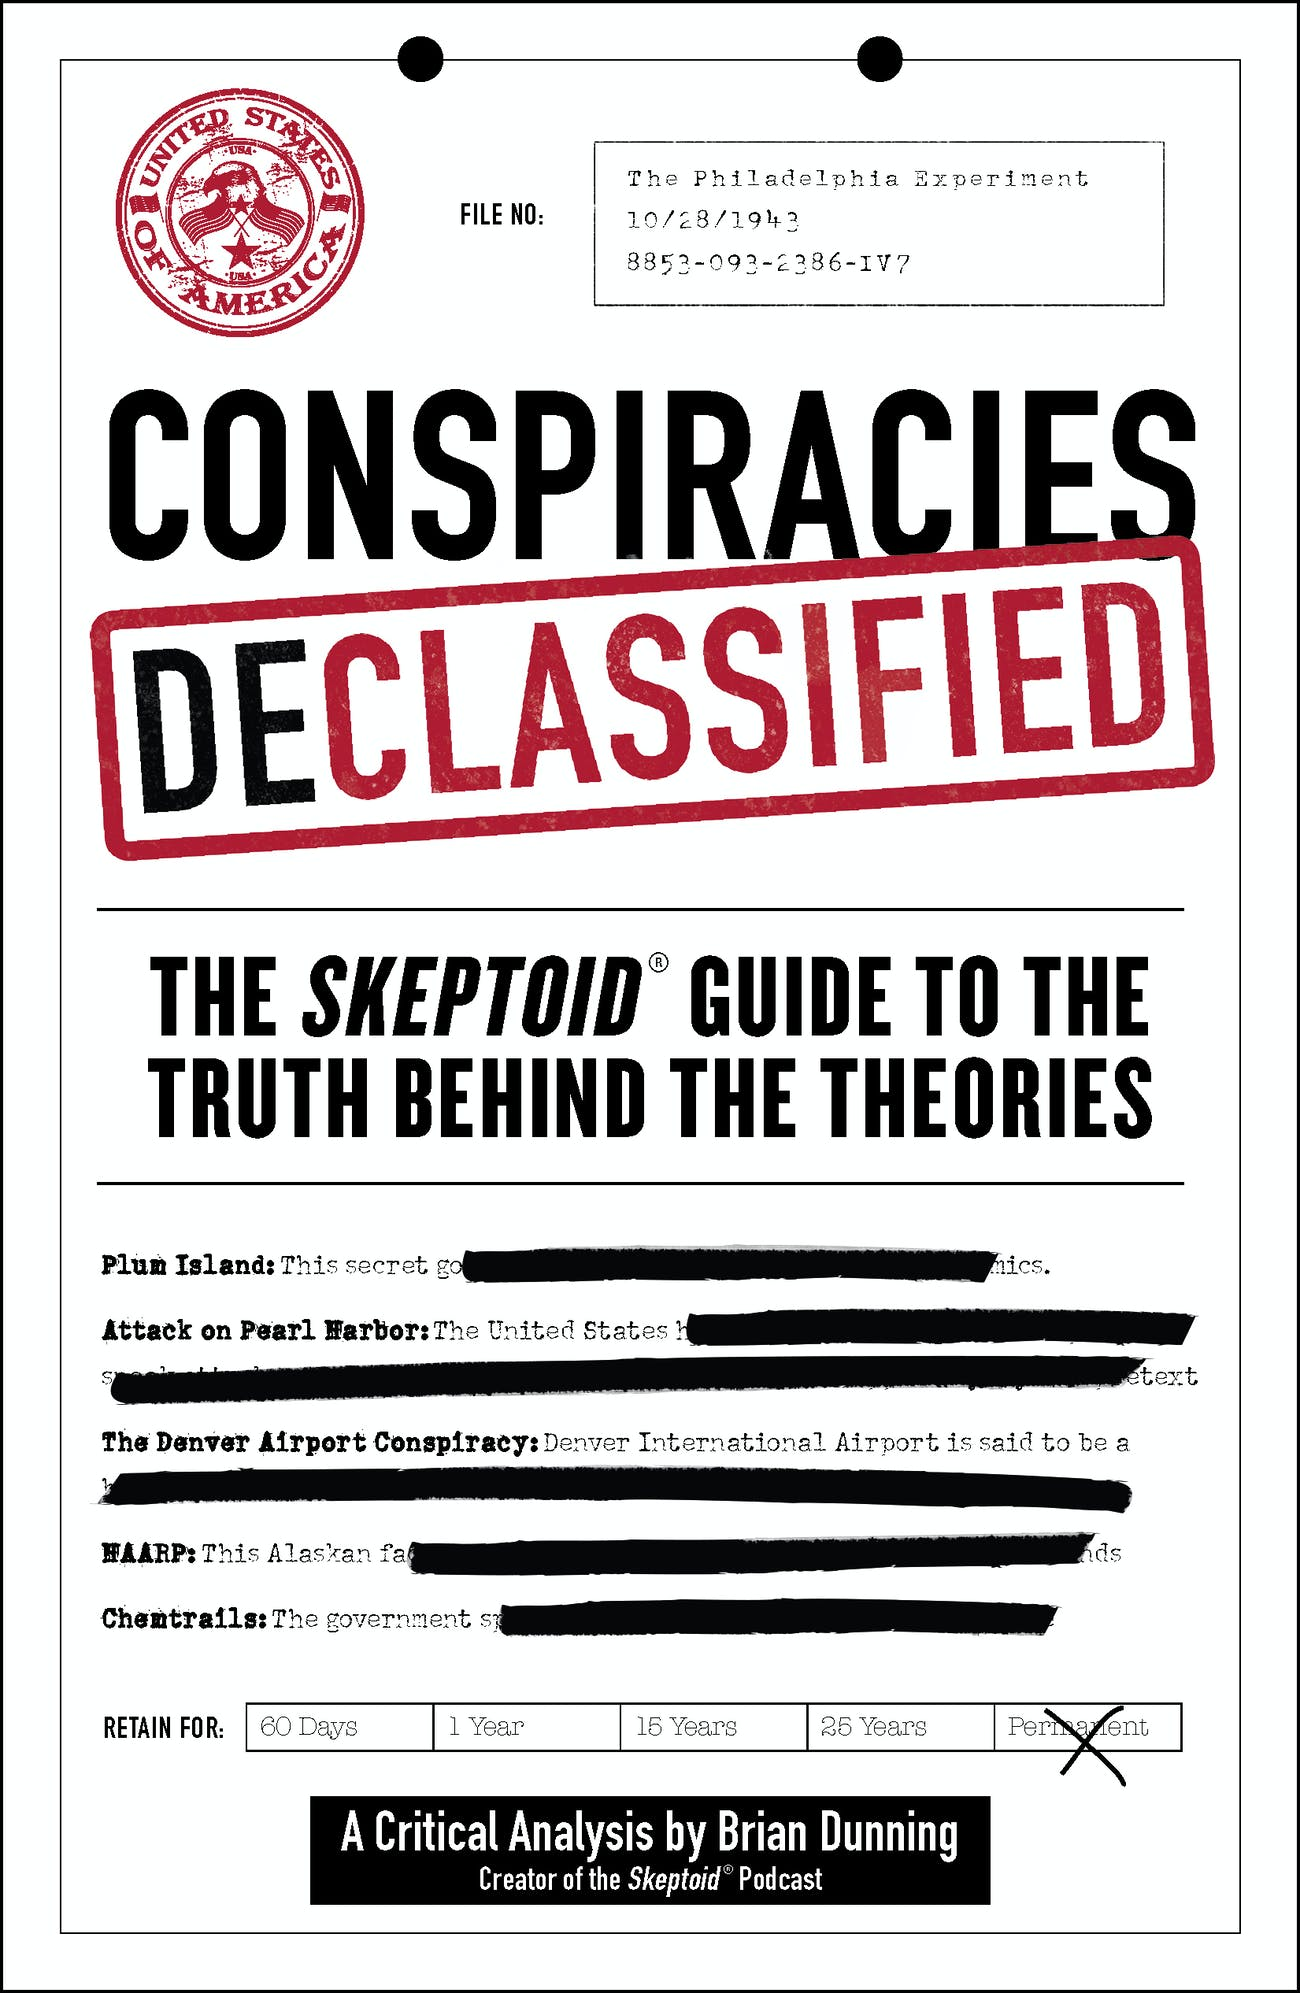 The cover of 'Conspiracies Declassified'